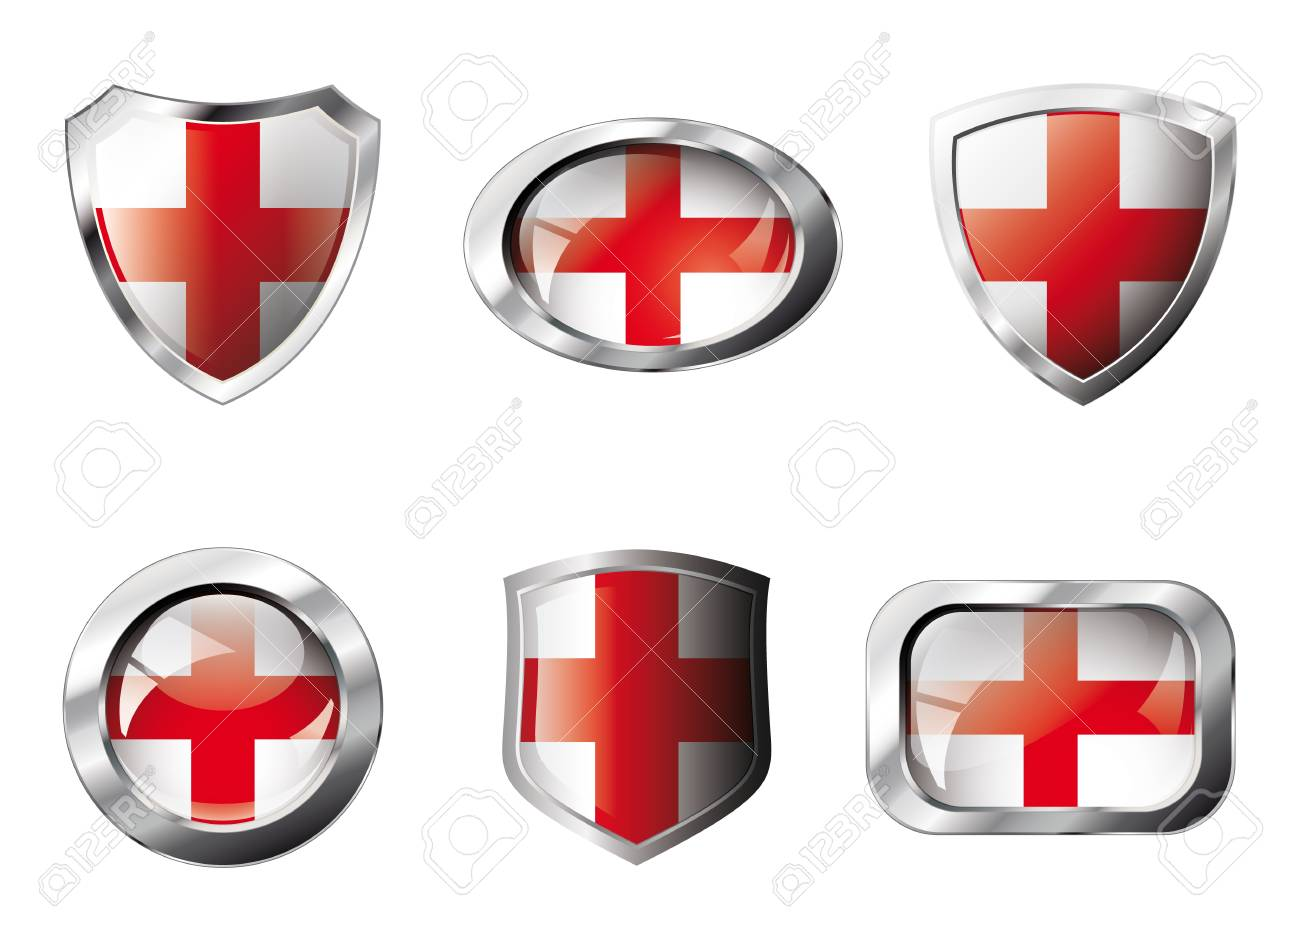 England set shiny buttons and shields of flag with metal frame. Isolated abstract object against white background. Stock Photo - 8787332